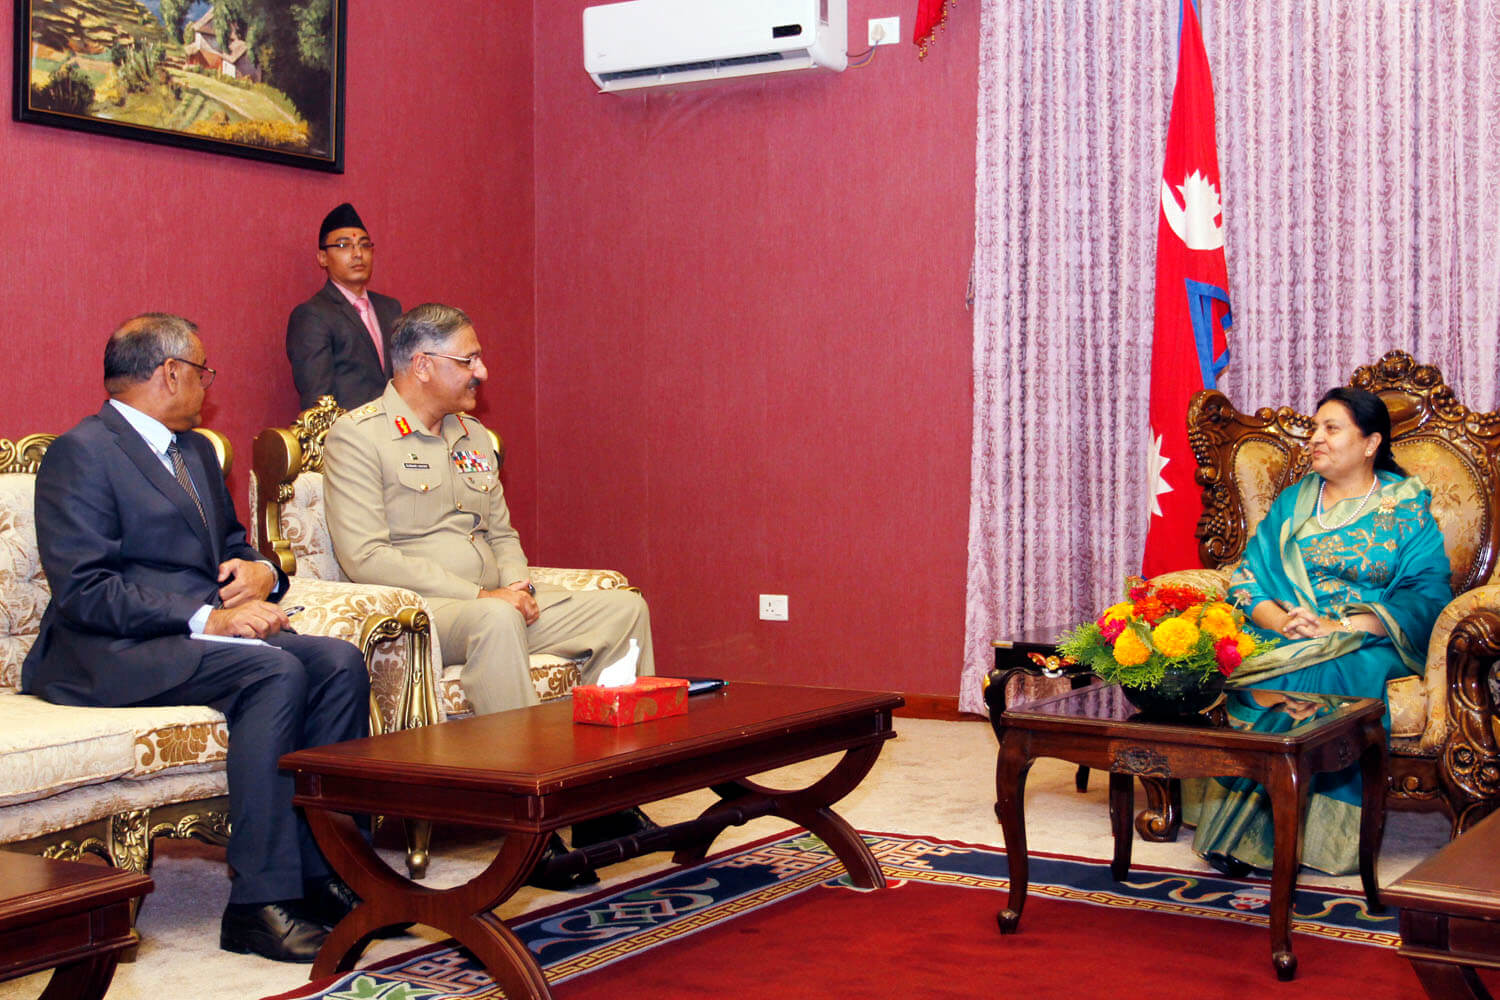 Pakistan Armed Forces' Chairman Joint Chiefs of Staff Committee General Zubair Mahmood Hayat pays courtesy call to president Bidya Bhandari at her residence in Shital Niwas on Tuesday.